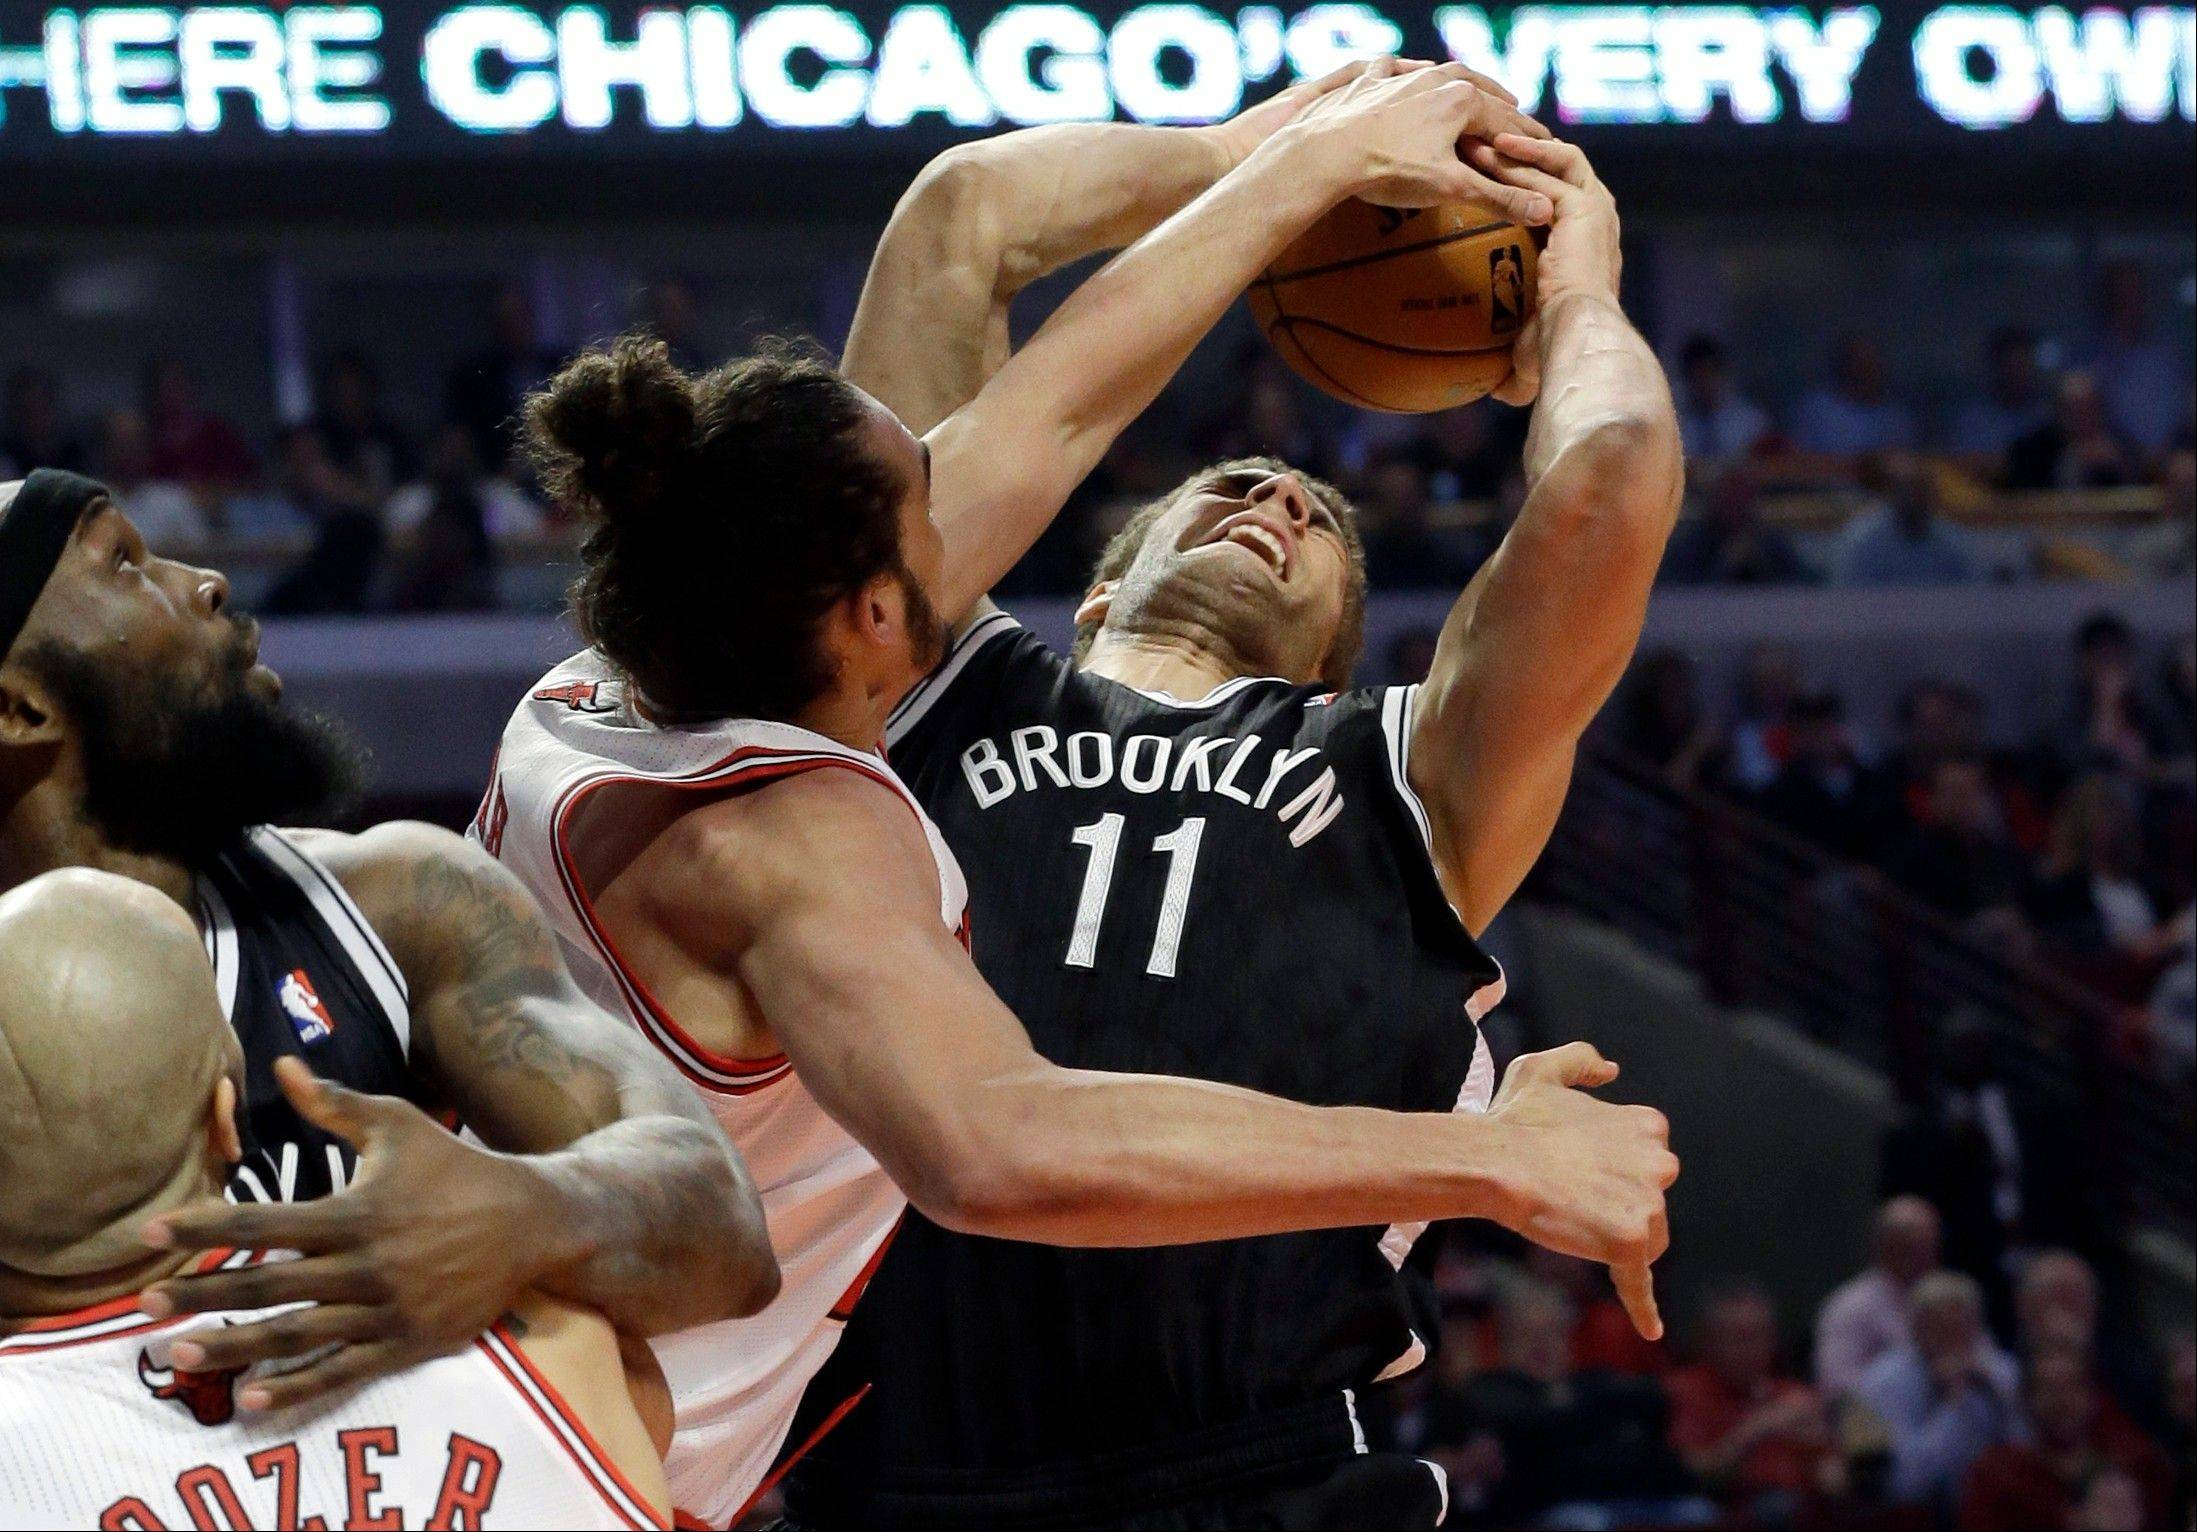 Chicago Bulls center Joakim Noah defends against a shot by Brooklyn Nets center Brook Lopez (11) during the first half in Game 6 of their first-round NBA basketball playoff series in Chicago, Thursday, May 2, 2013.